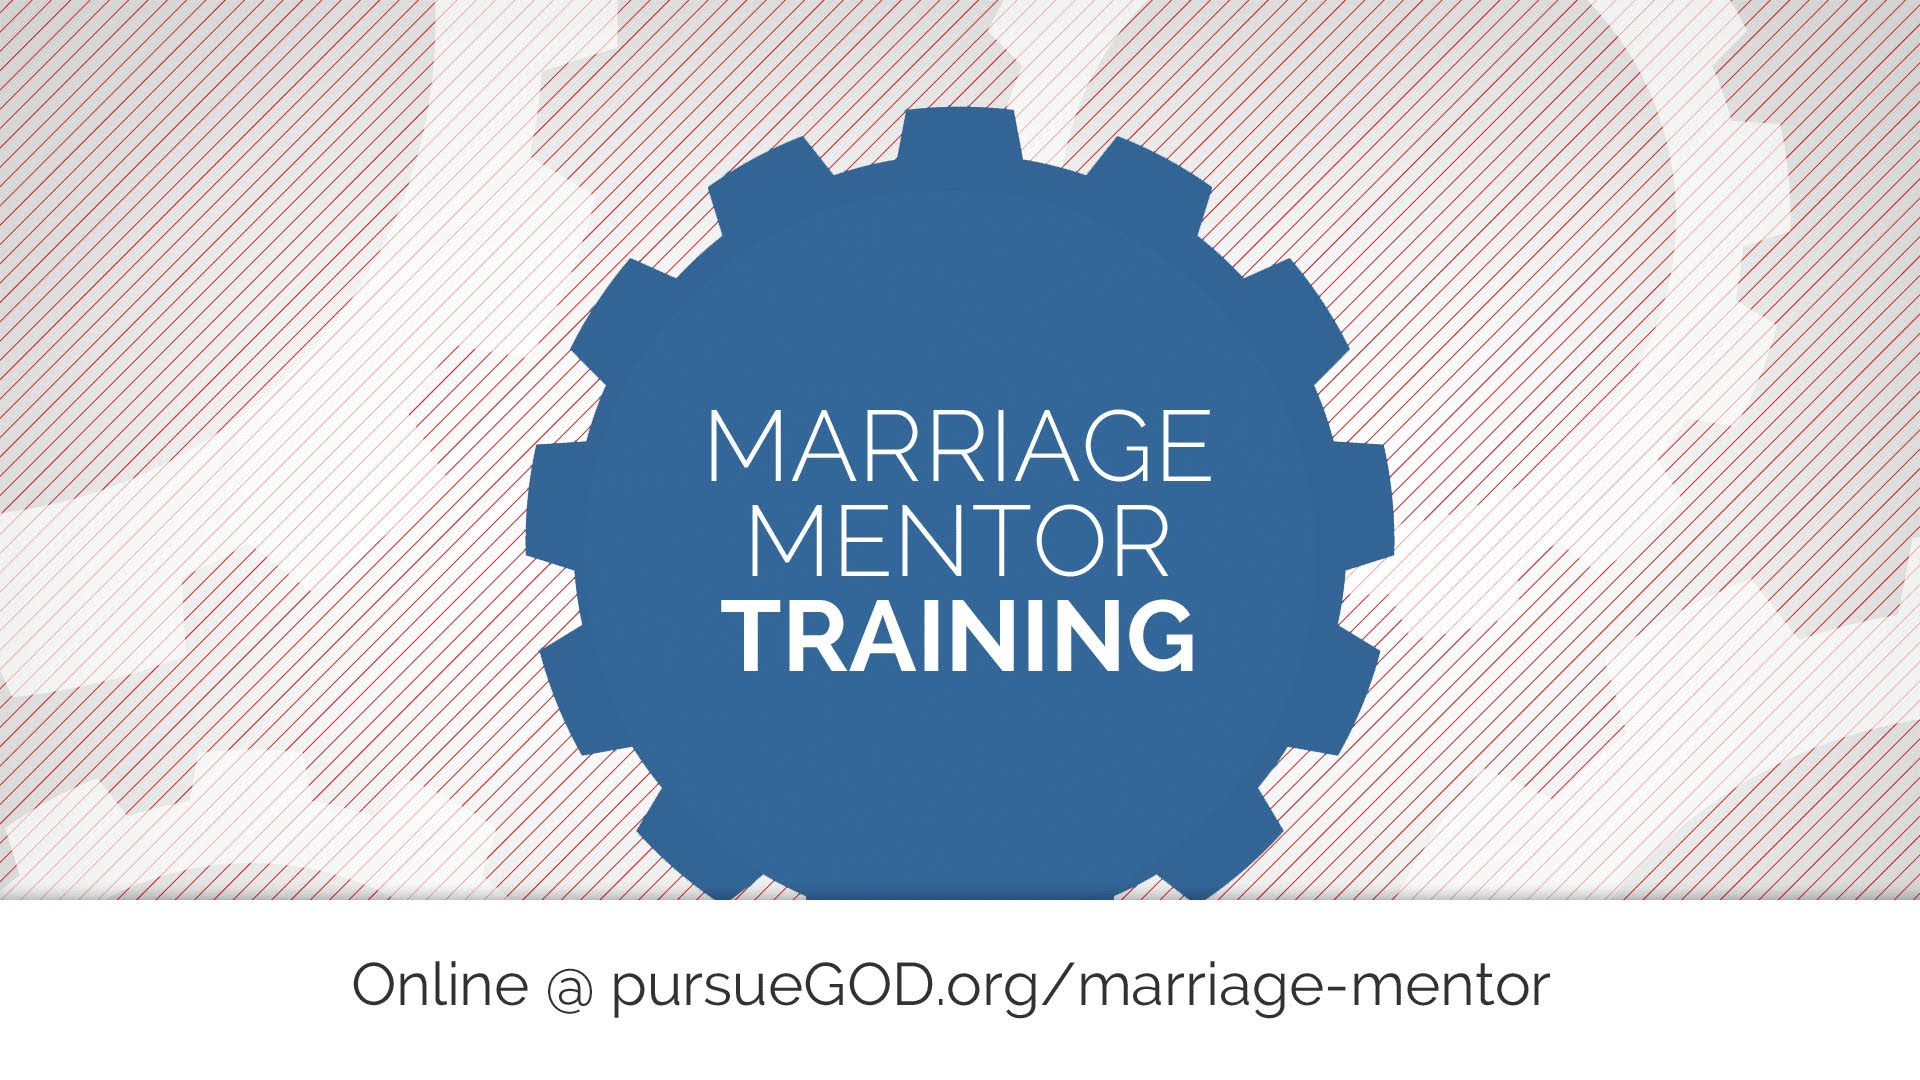 What Qualifies You to Be a Marriage Mentor?